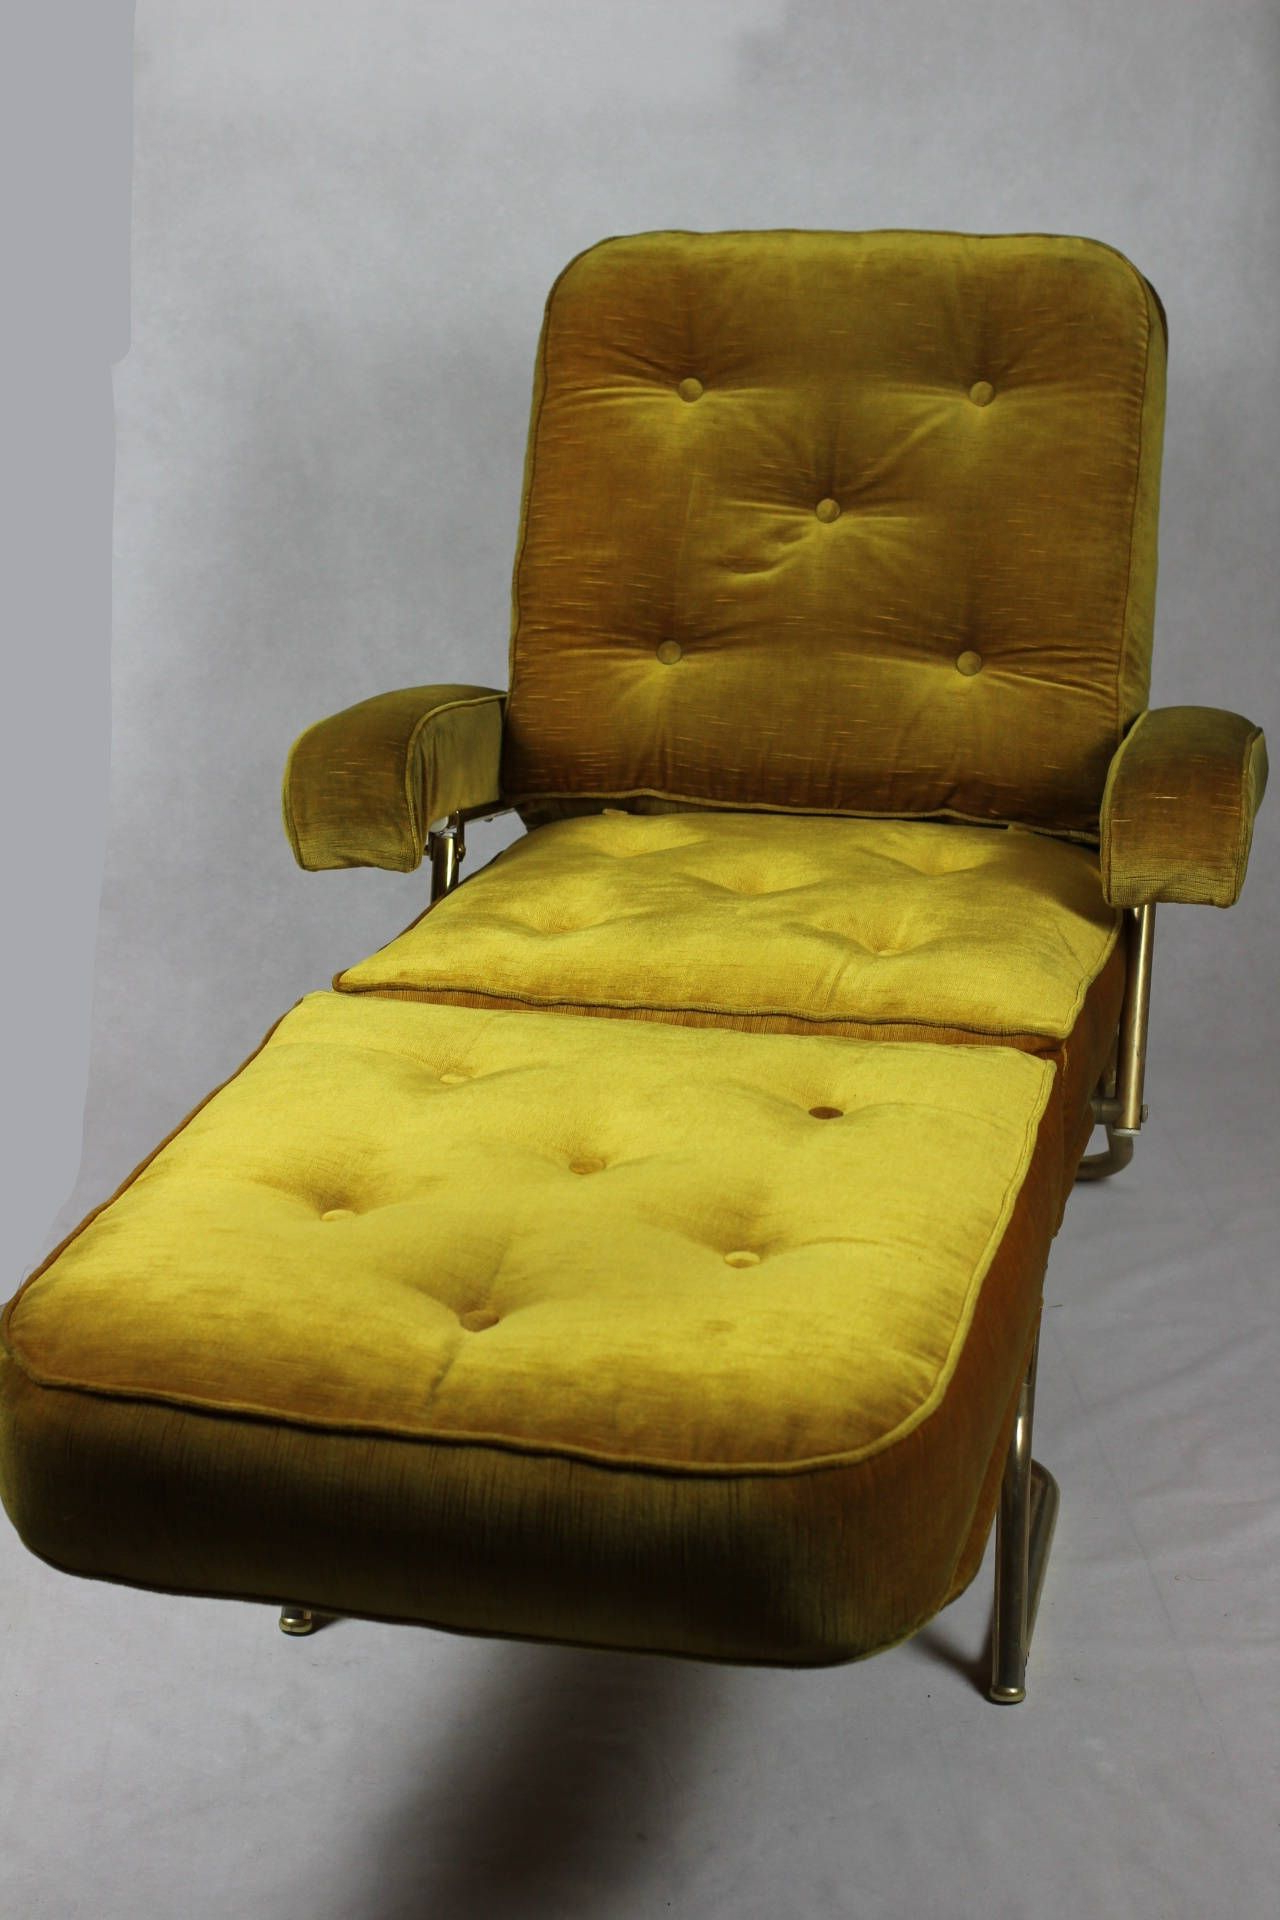 Trendy French Seamed Sectional Sofas Oblong Mustard Inside French Designer Chaise Longue // 1970'S Avacado Green (View 15 of 25)